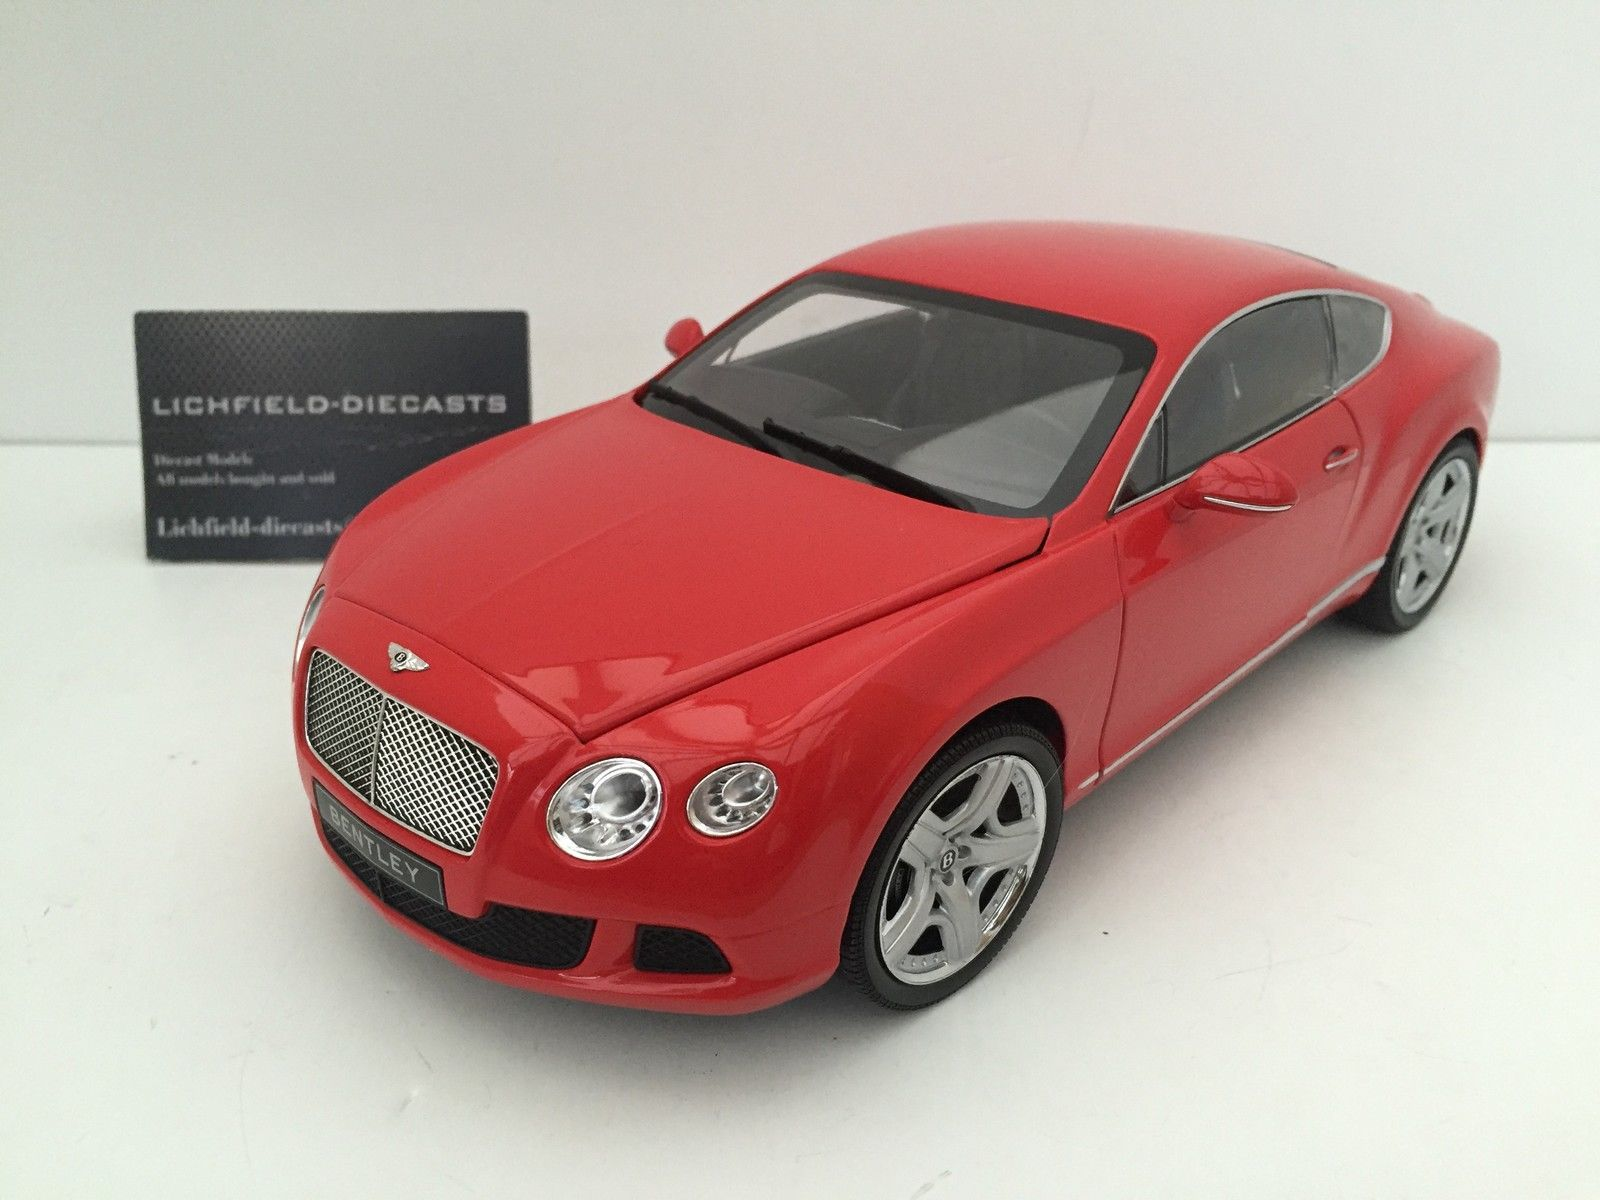 Minichamps 1 18 BENTLEY CONTINENTAL GT IN RED 2011 LTD 750 PCS 100